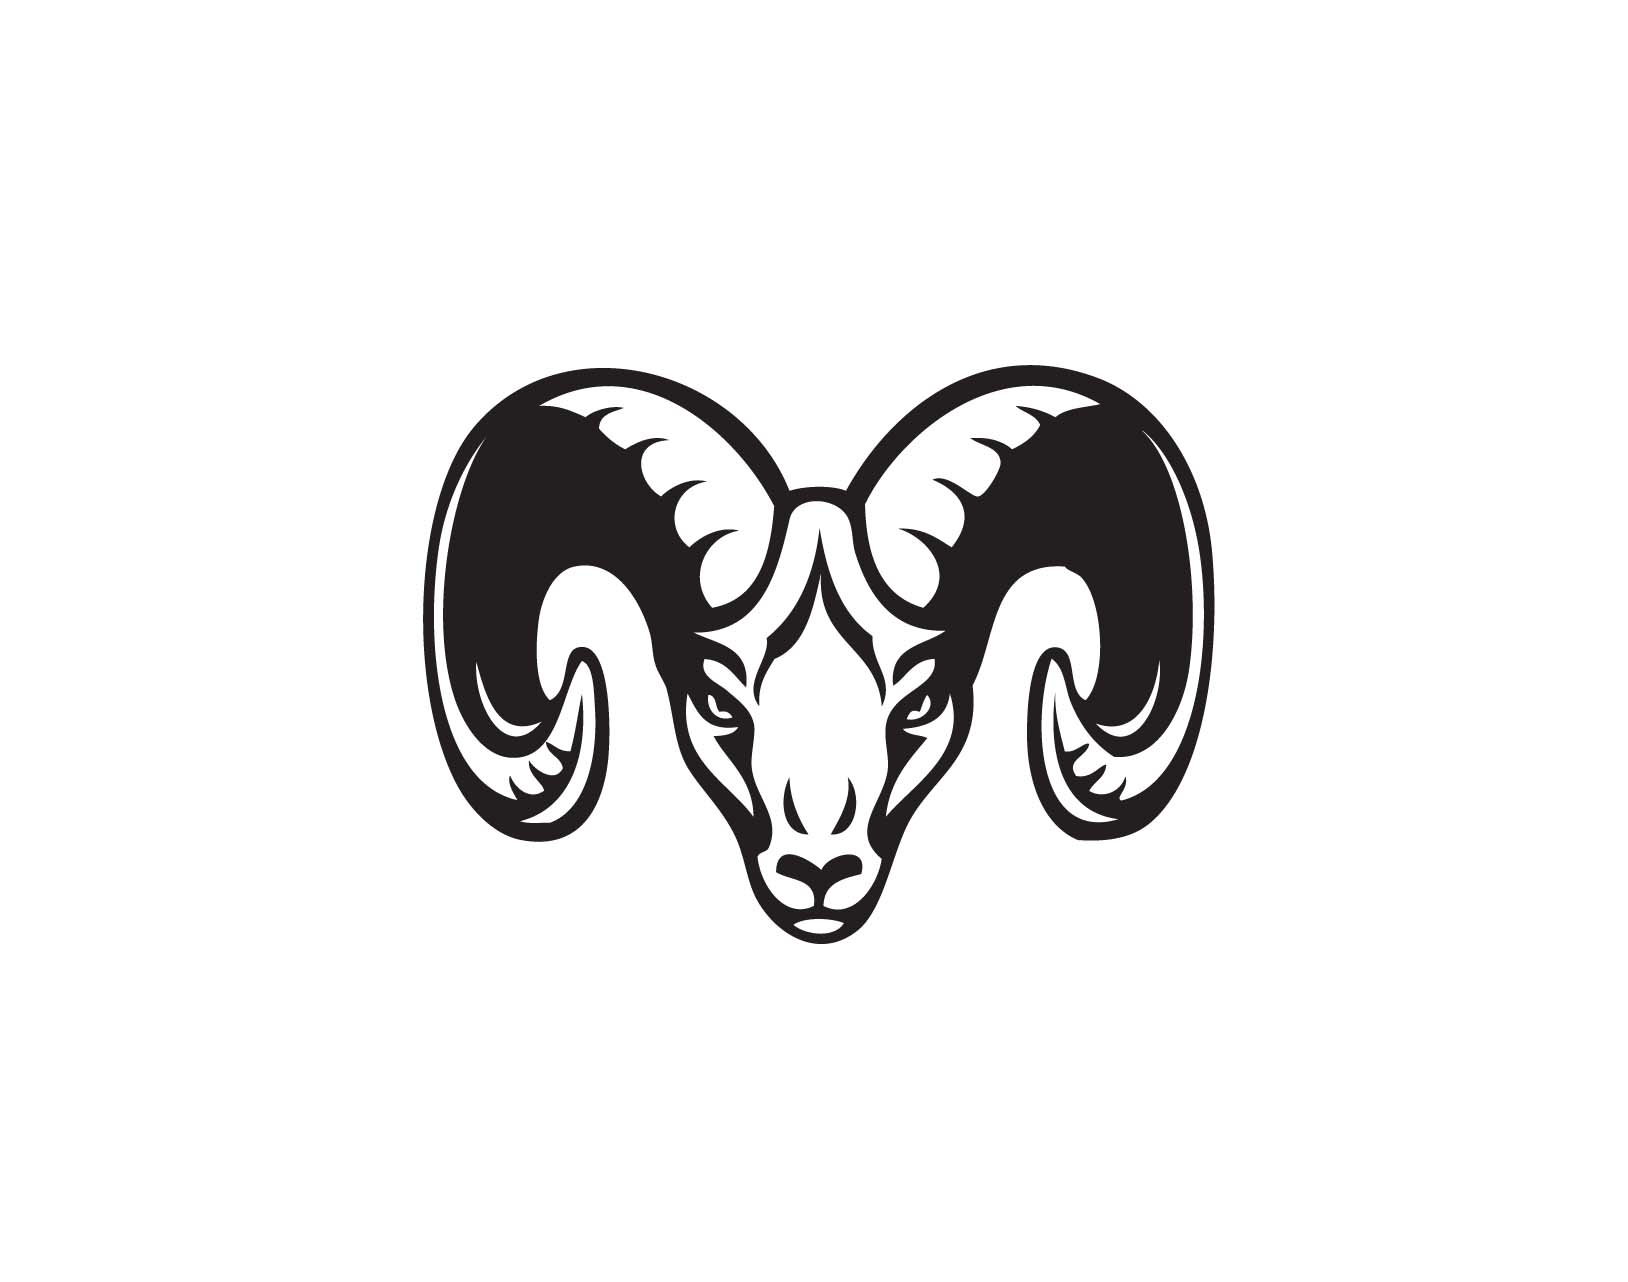 Free ram head clipart image black and white download Free Ram Head Cliparts, Download Free Clip Art, Free Clip Art on ... image black and white download